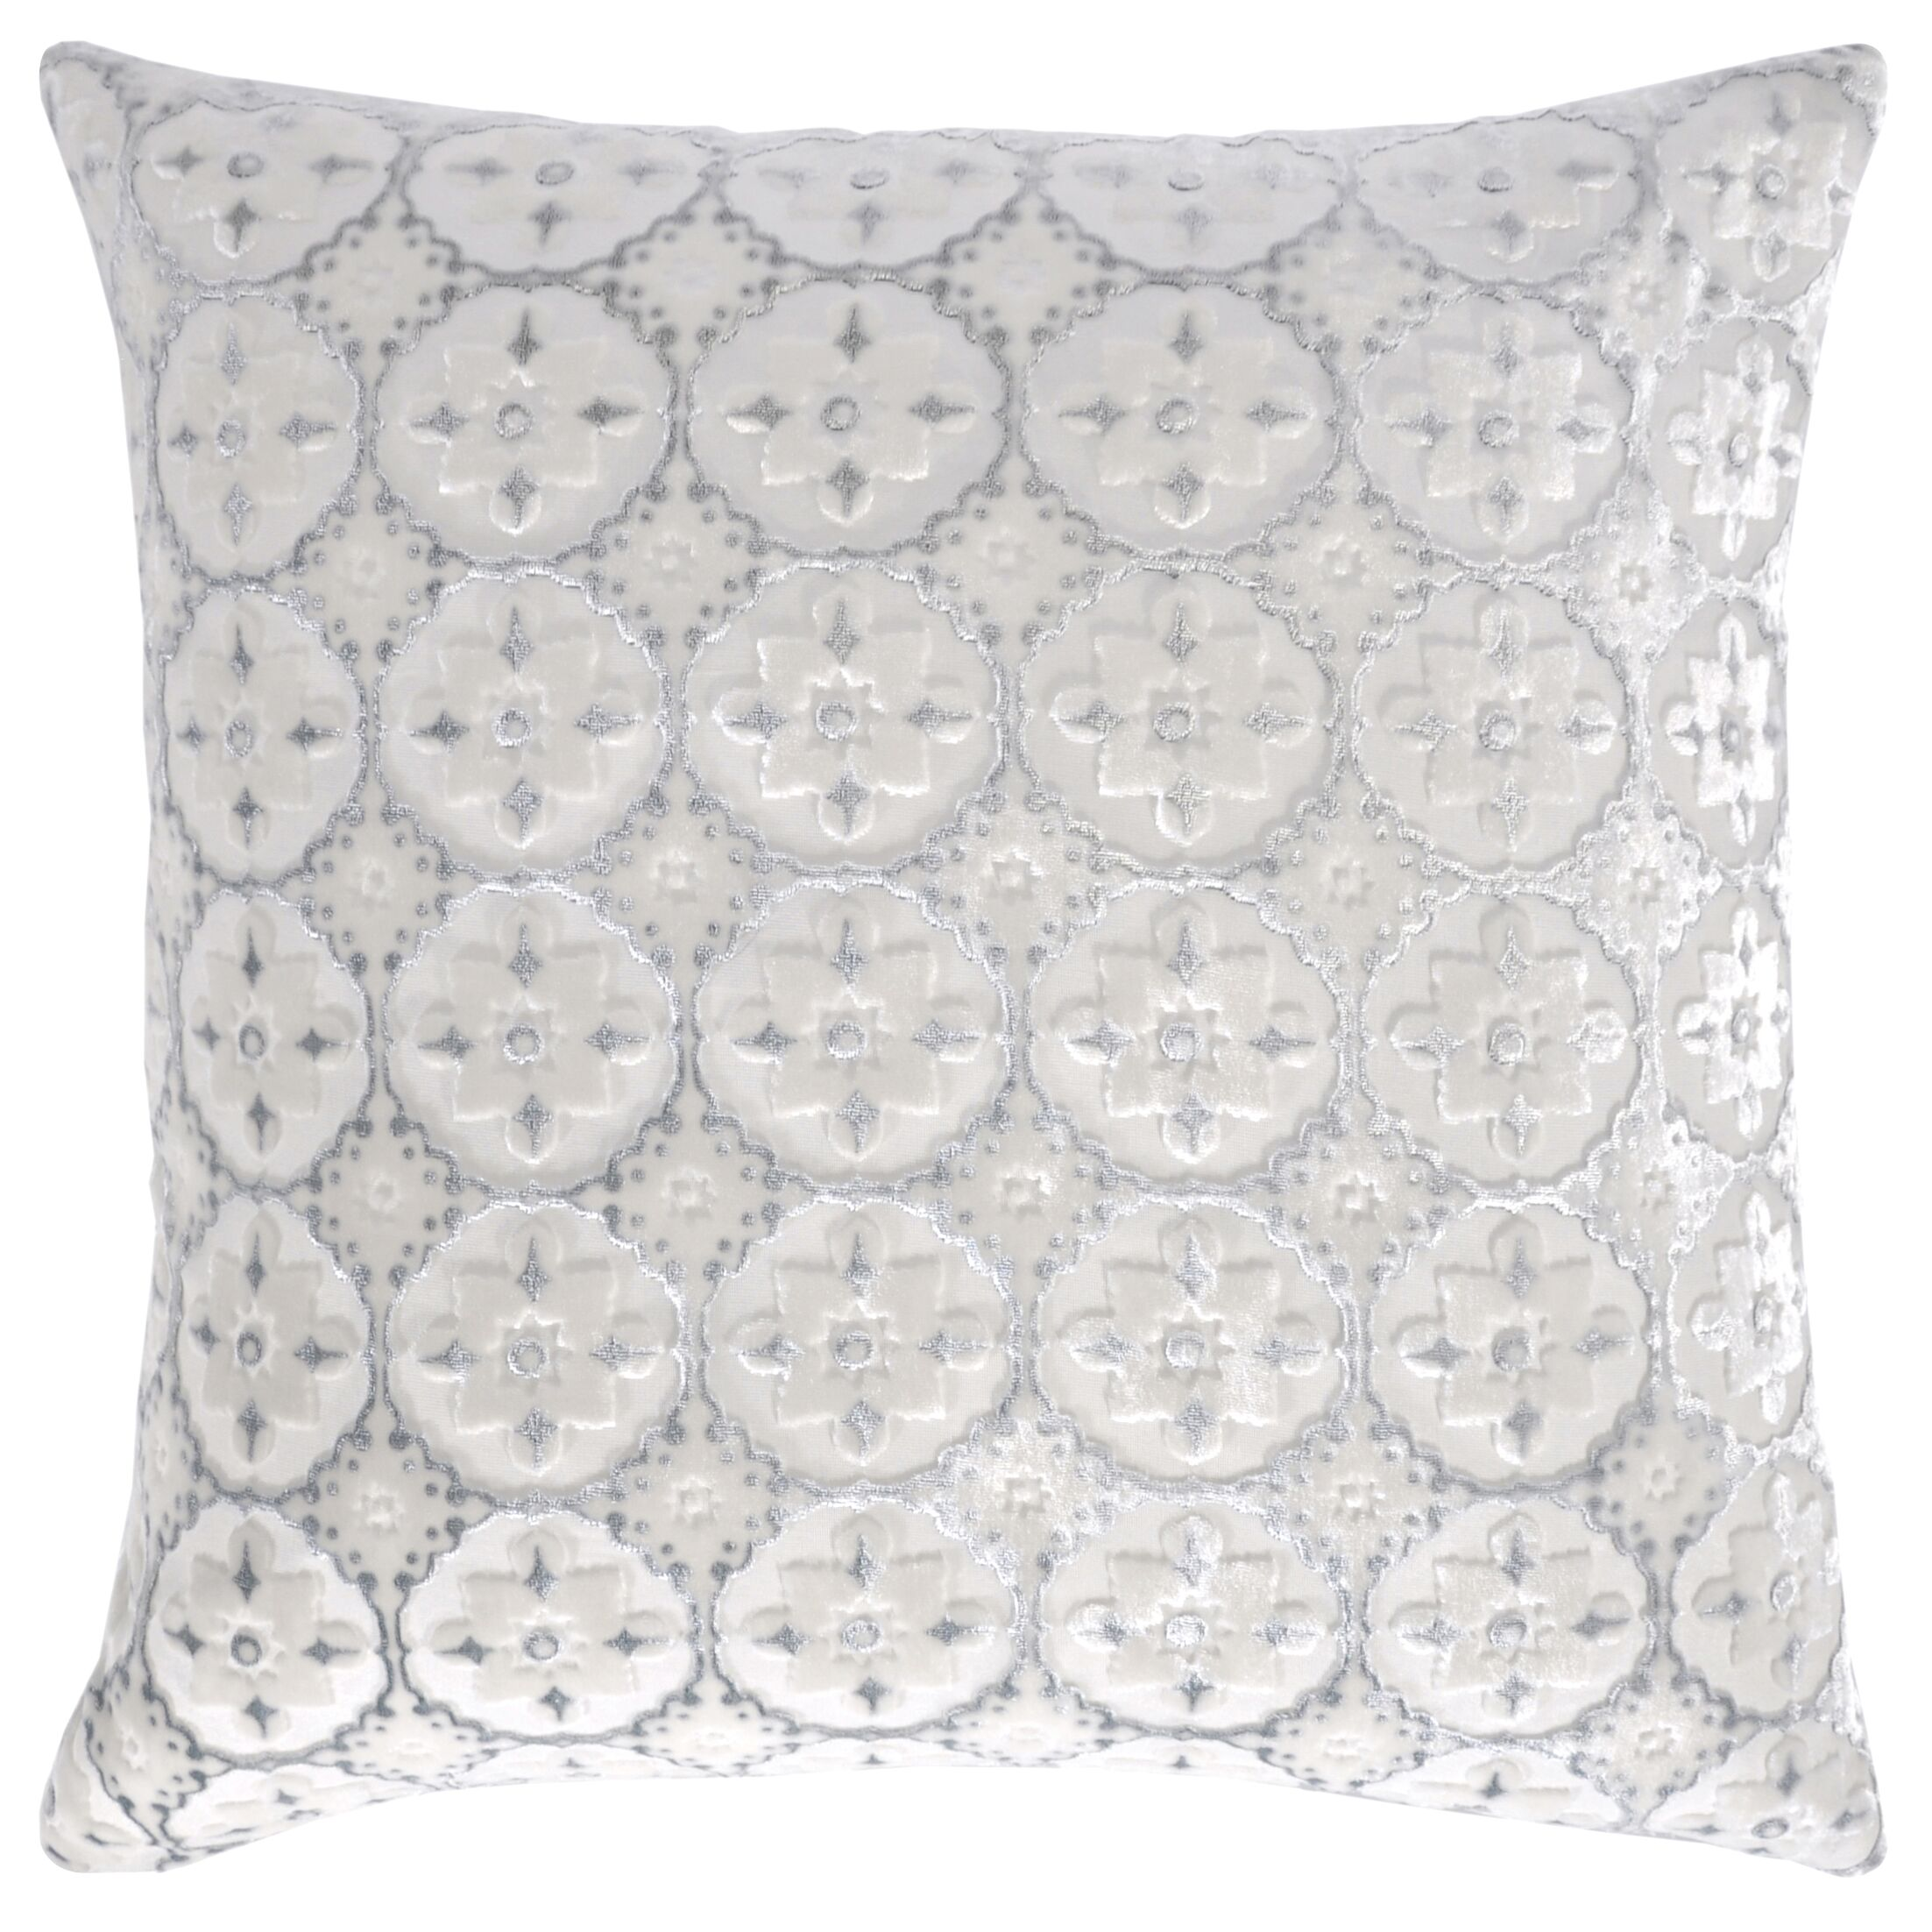 Small Moroccan Velvet Pillow Size: 18'' H x 18'' W x 4'' D, Color: White